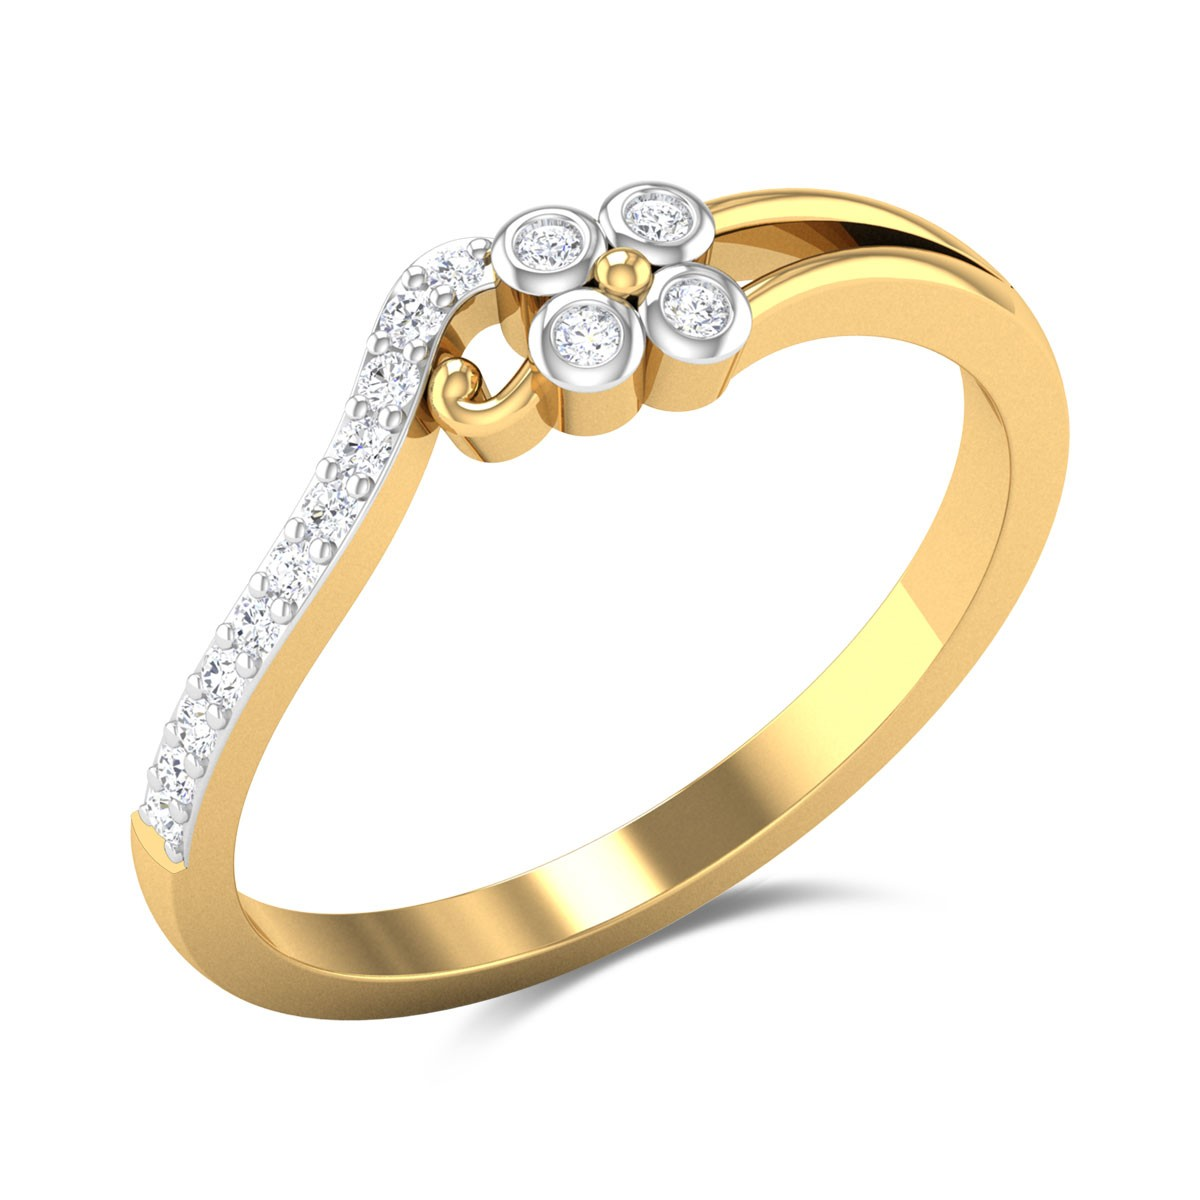 Frangipani Diamond Ring